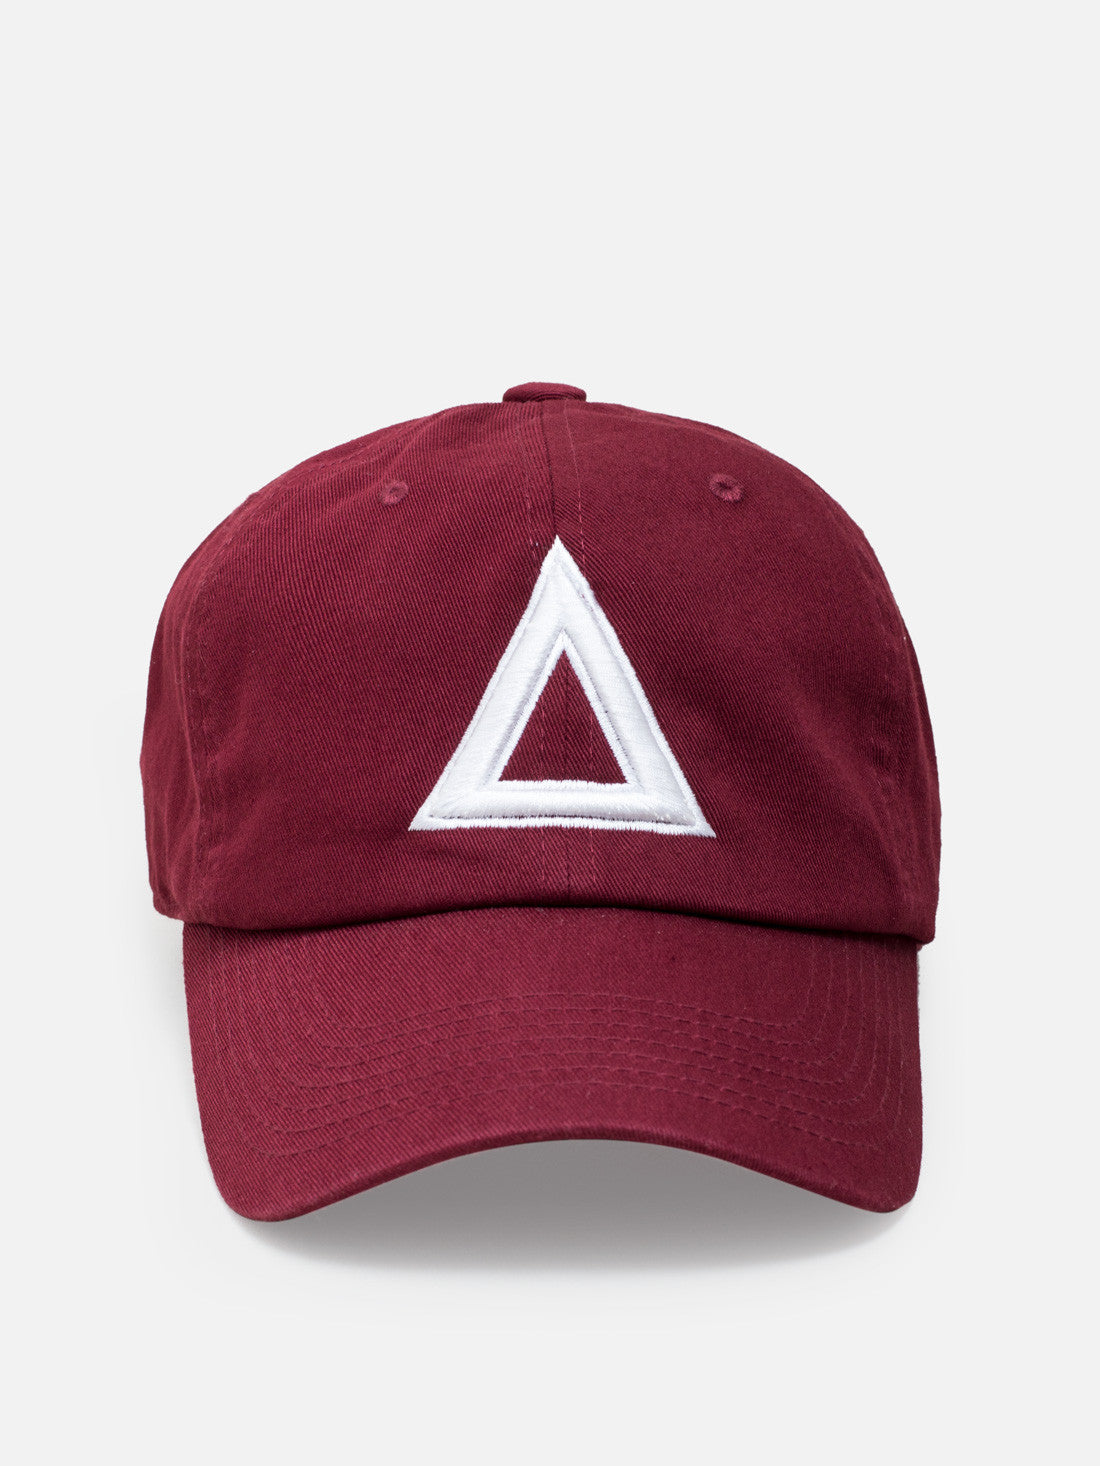 Dad hat Burgundy - white tri - Triangulo Swag